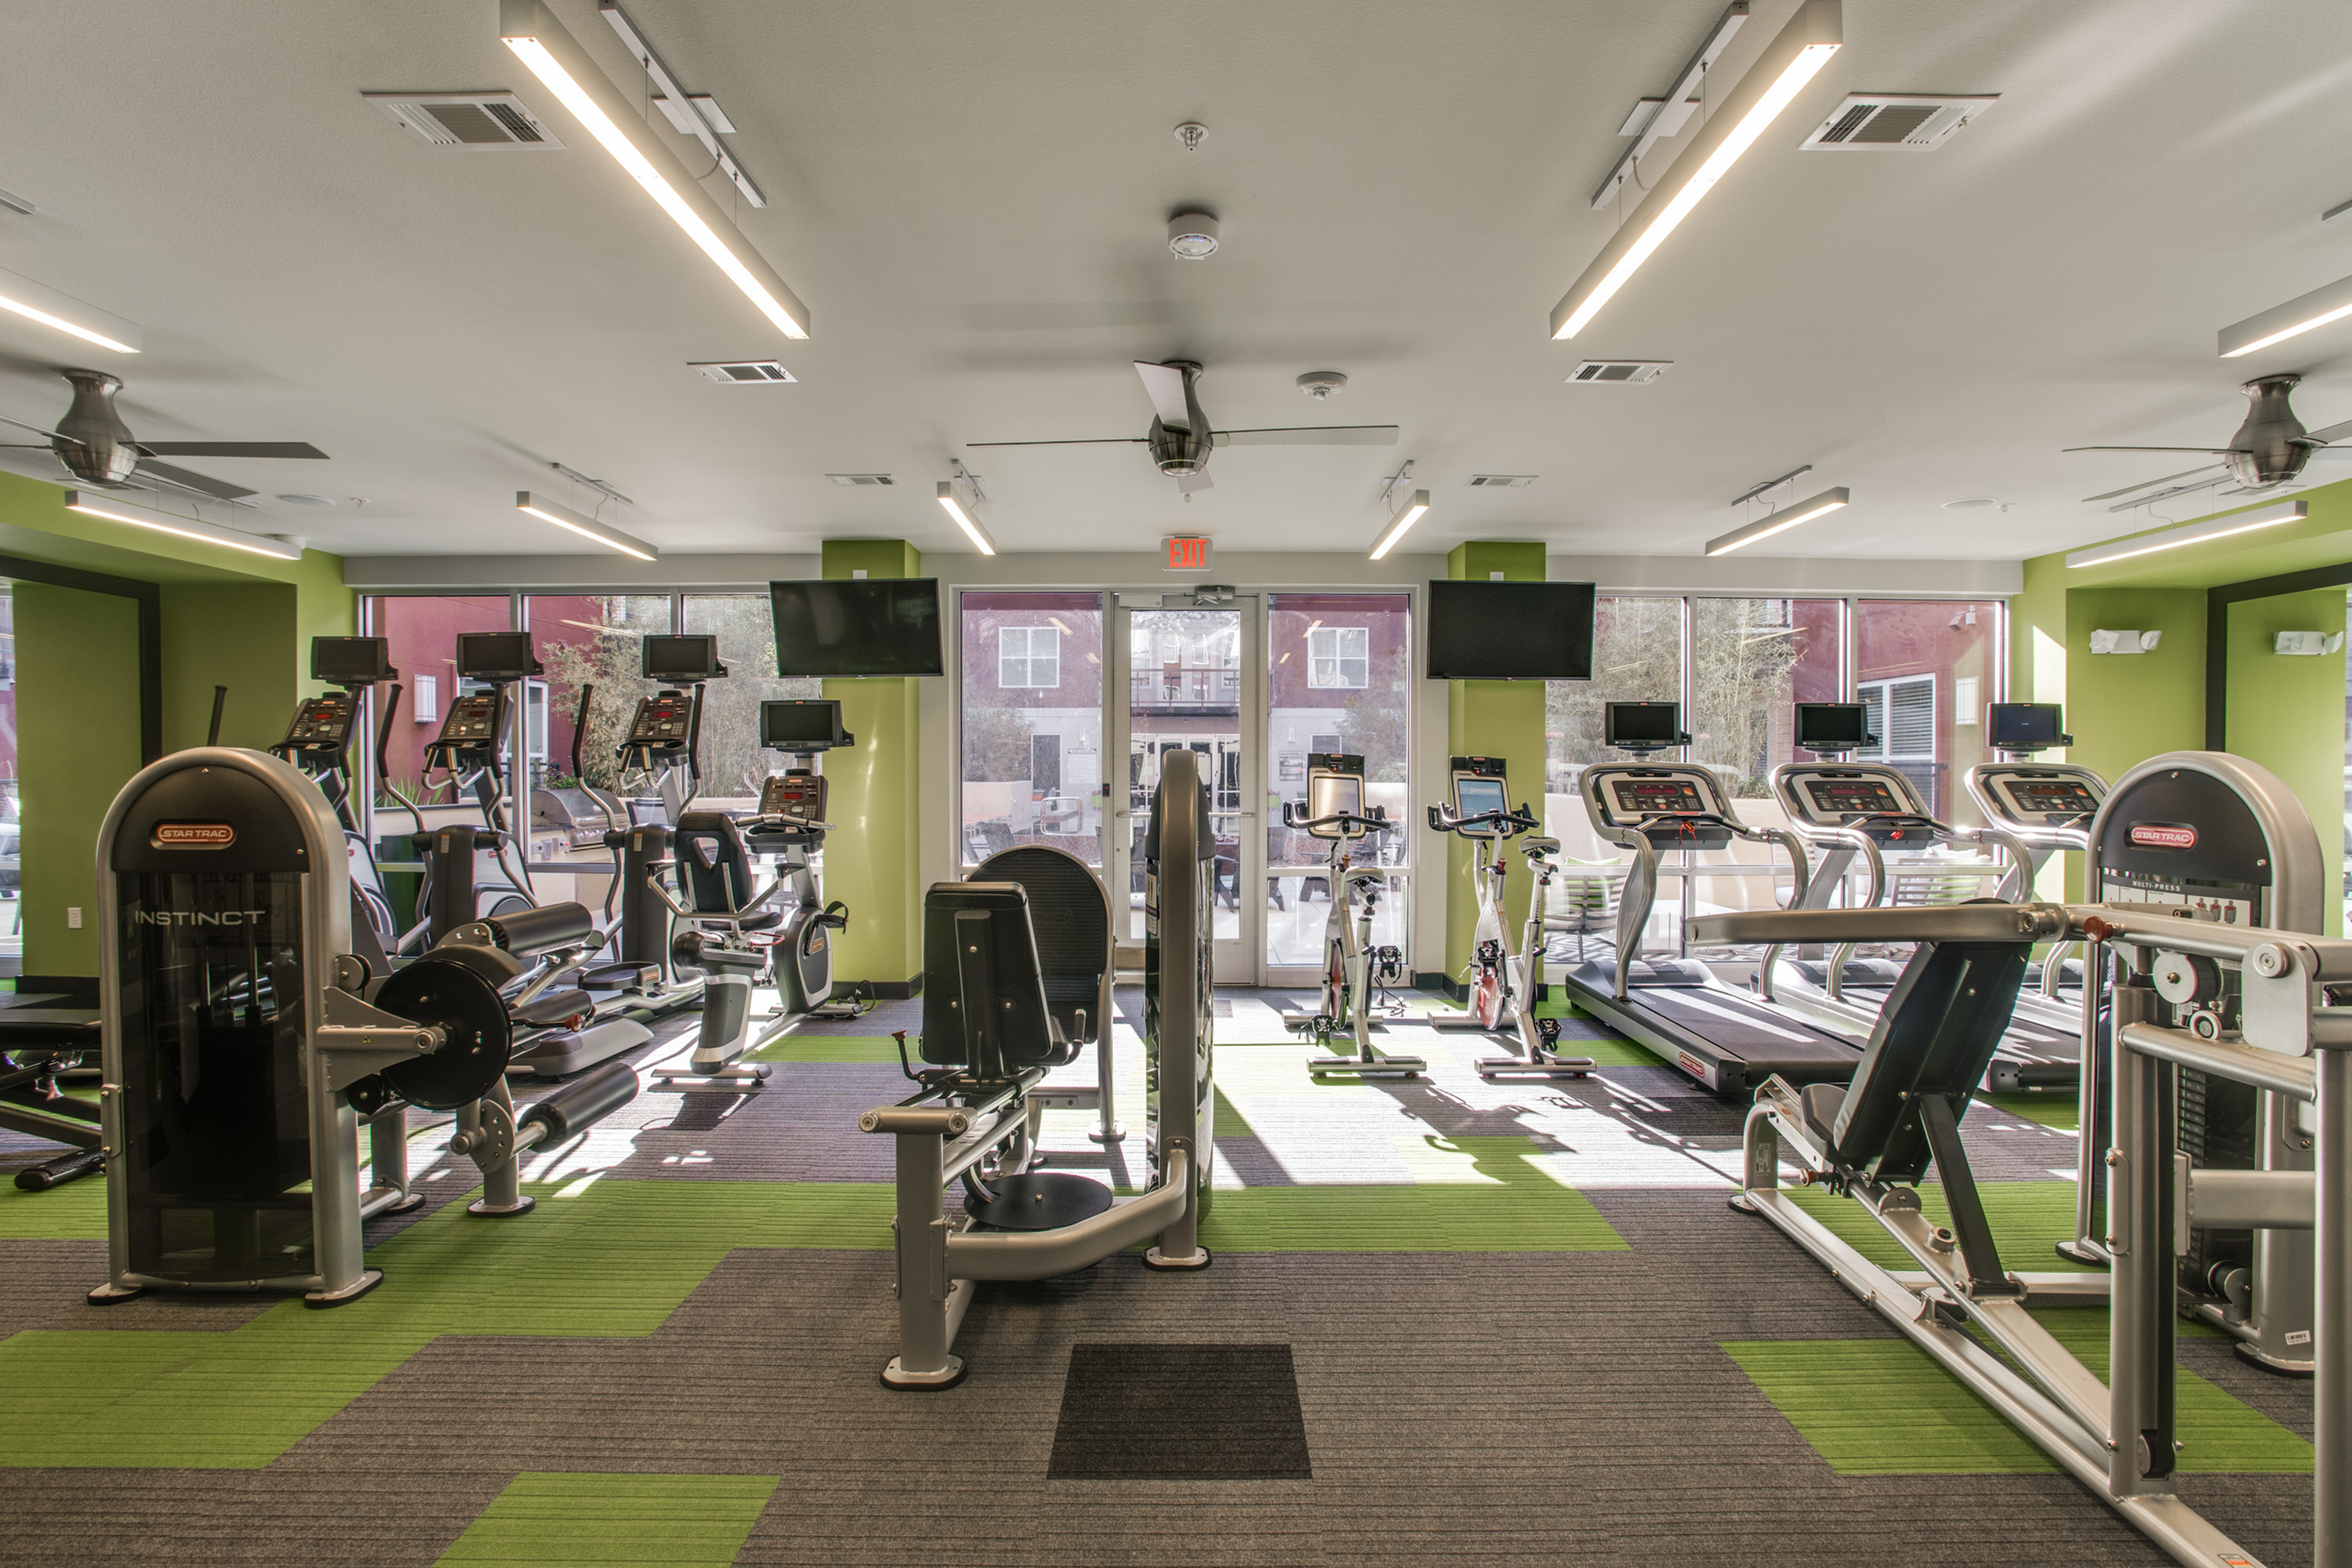 Image of State-of-the-Art Fitness Center for Routh Street Flats